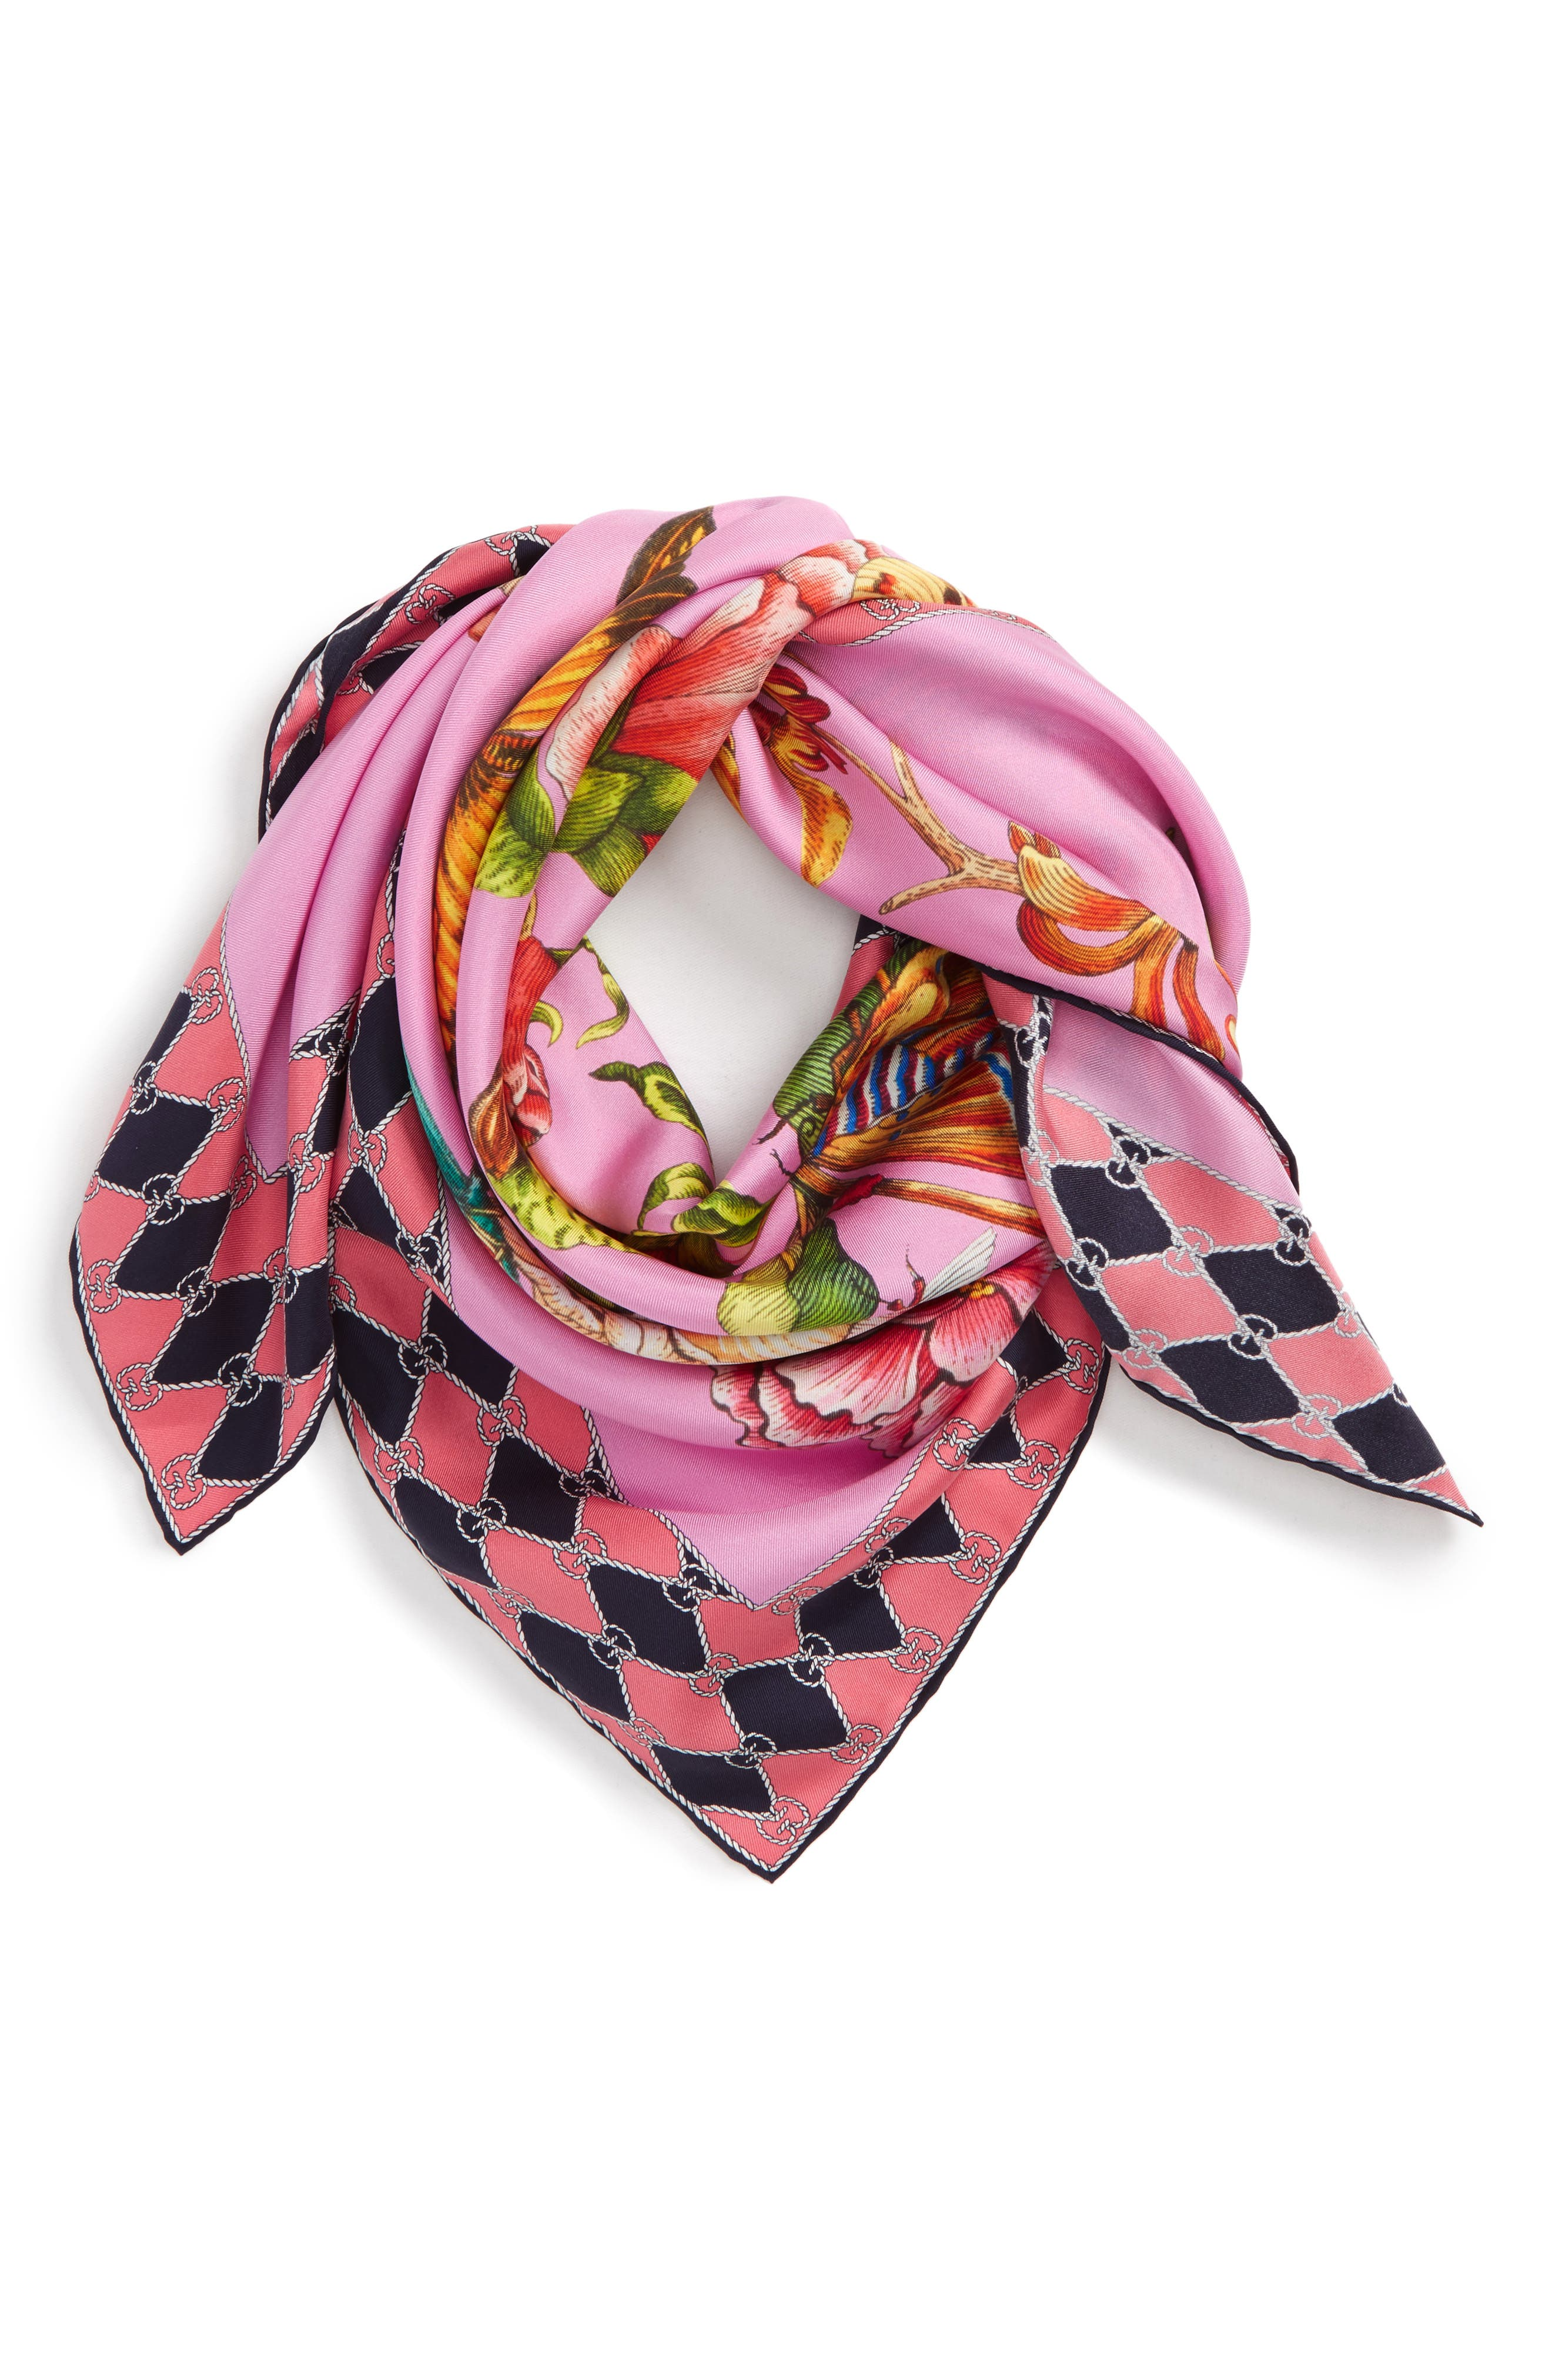 Foulard Chane Bouquet Silk Scarf,                             Alternate thumbnail 3, color,                             Pink